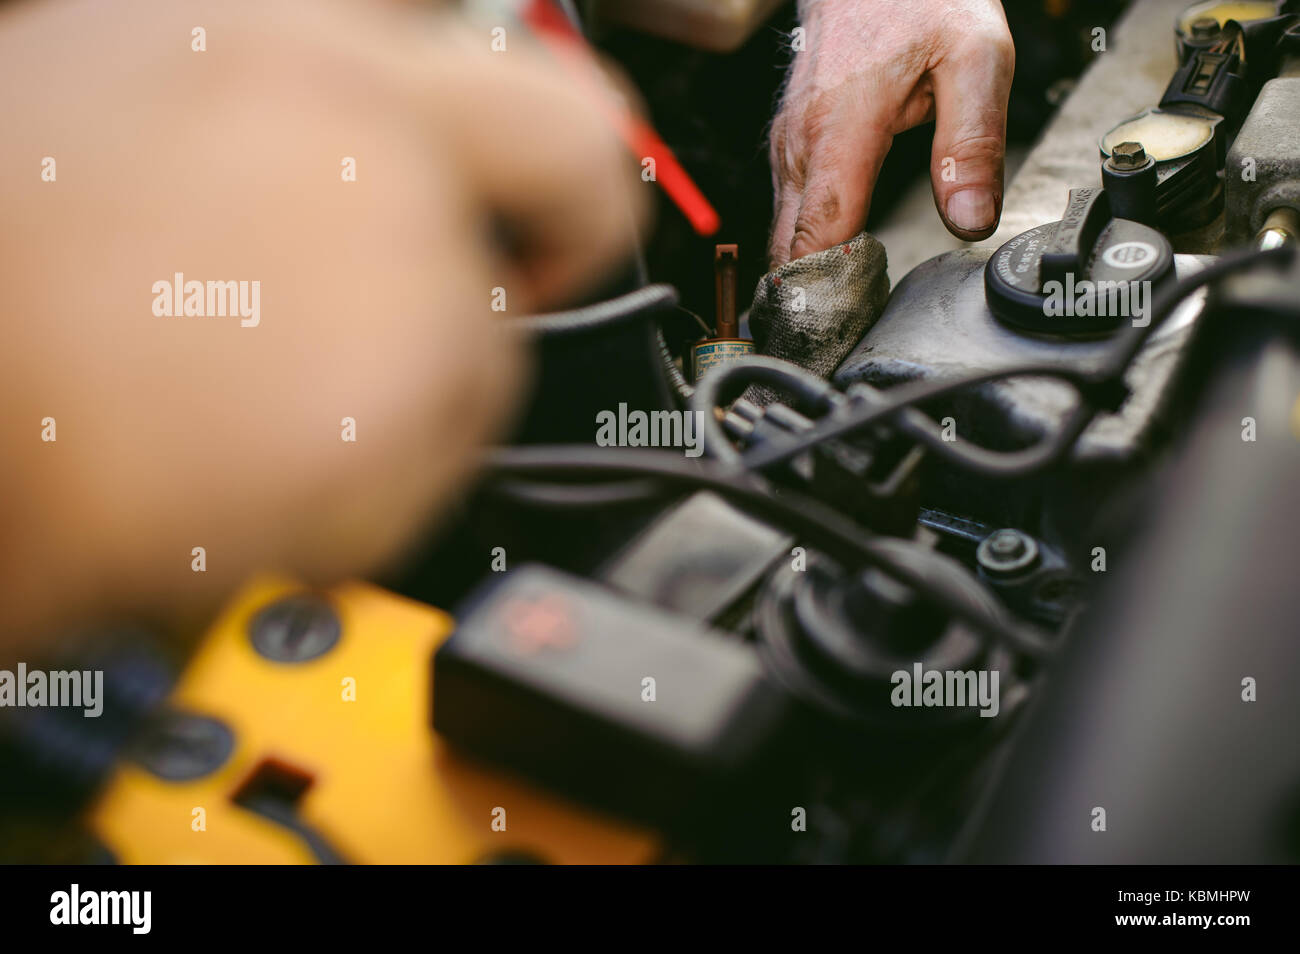 hands of an auto mechanic close-up. servicing and caring for a car engine - Stock Image